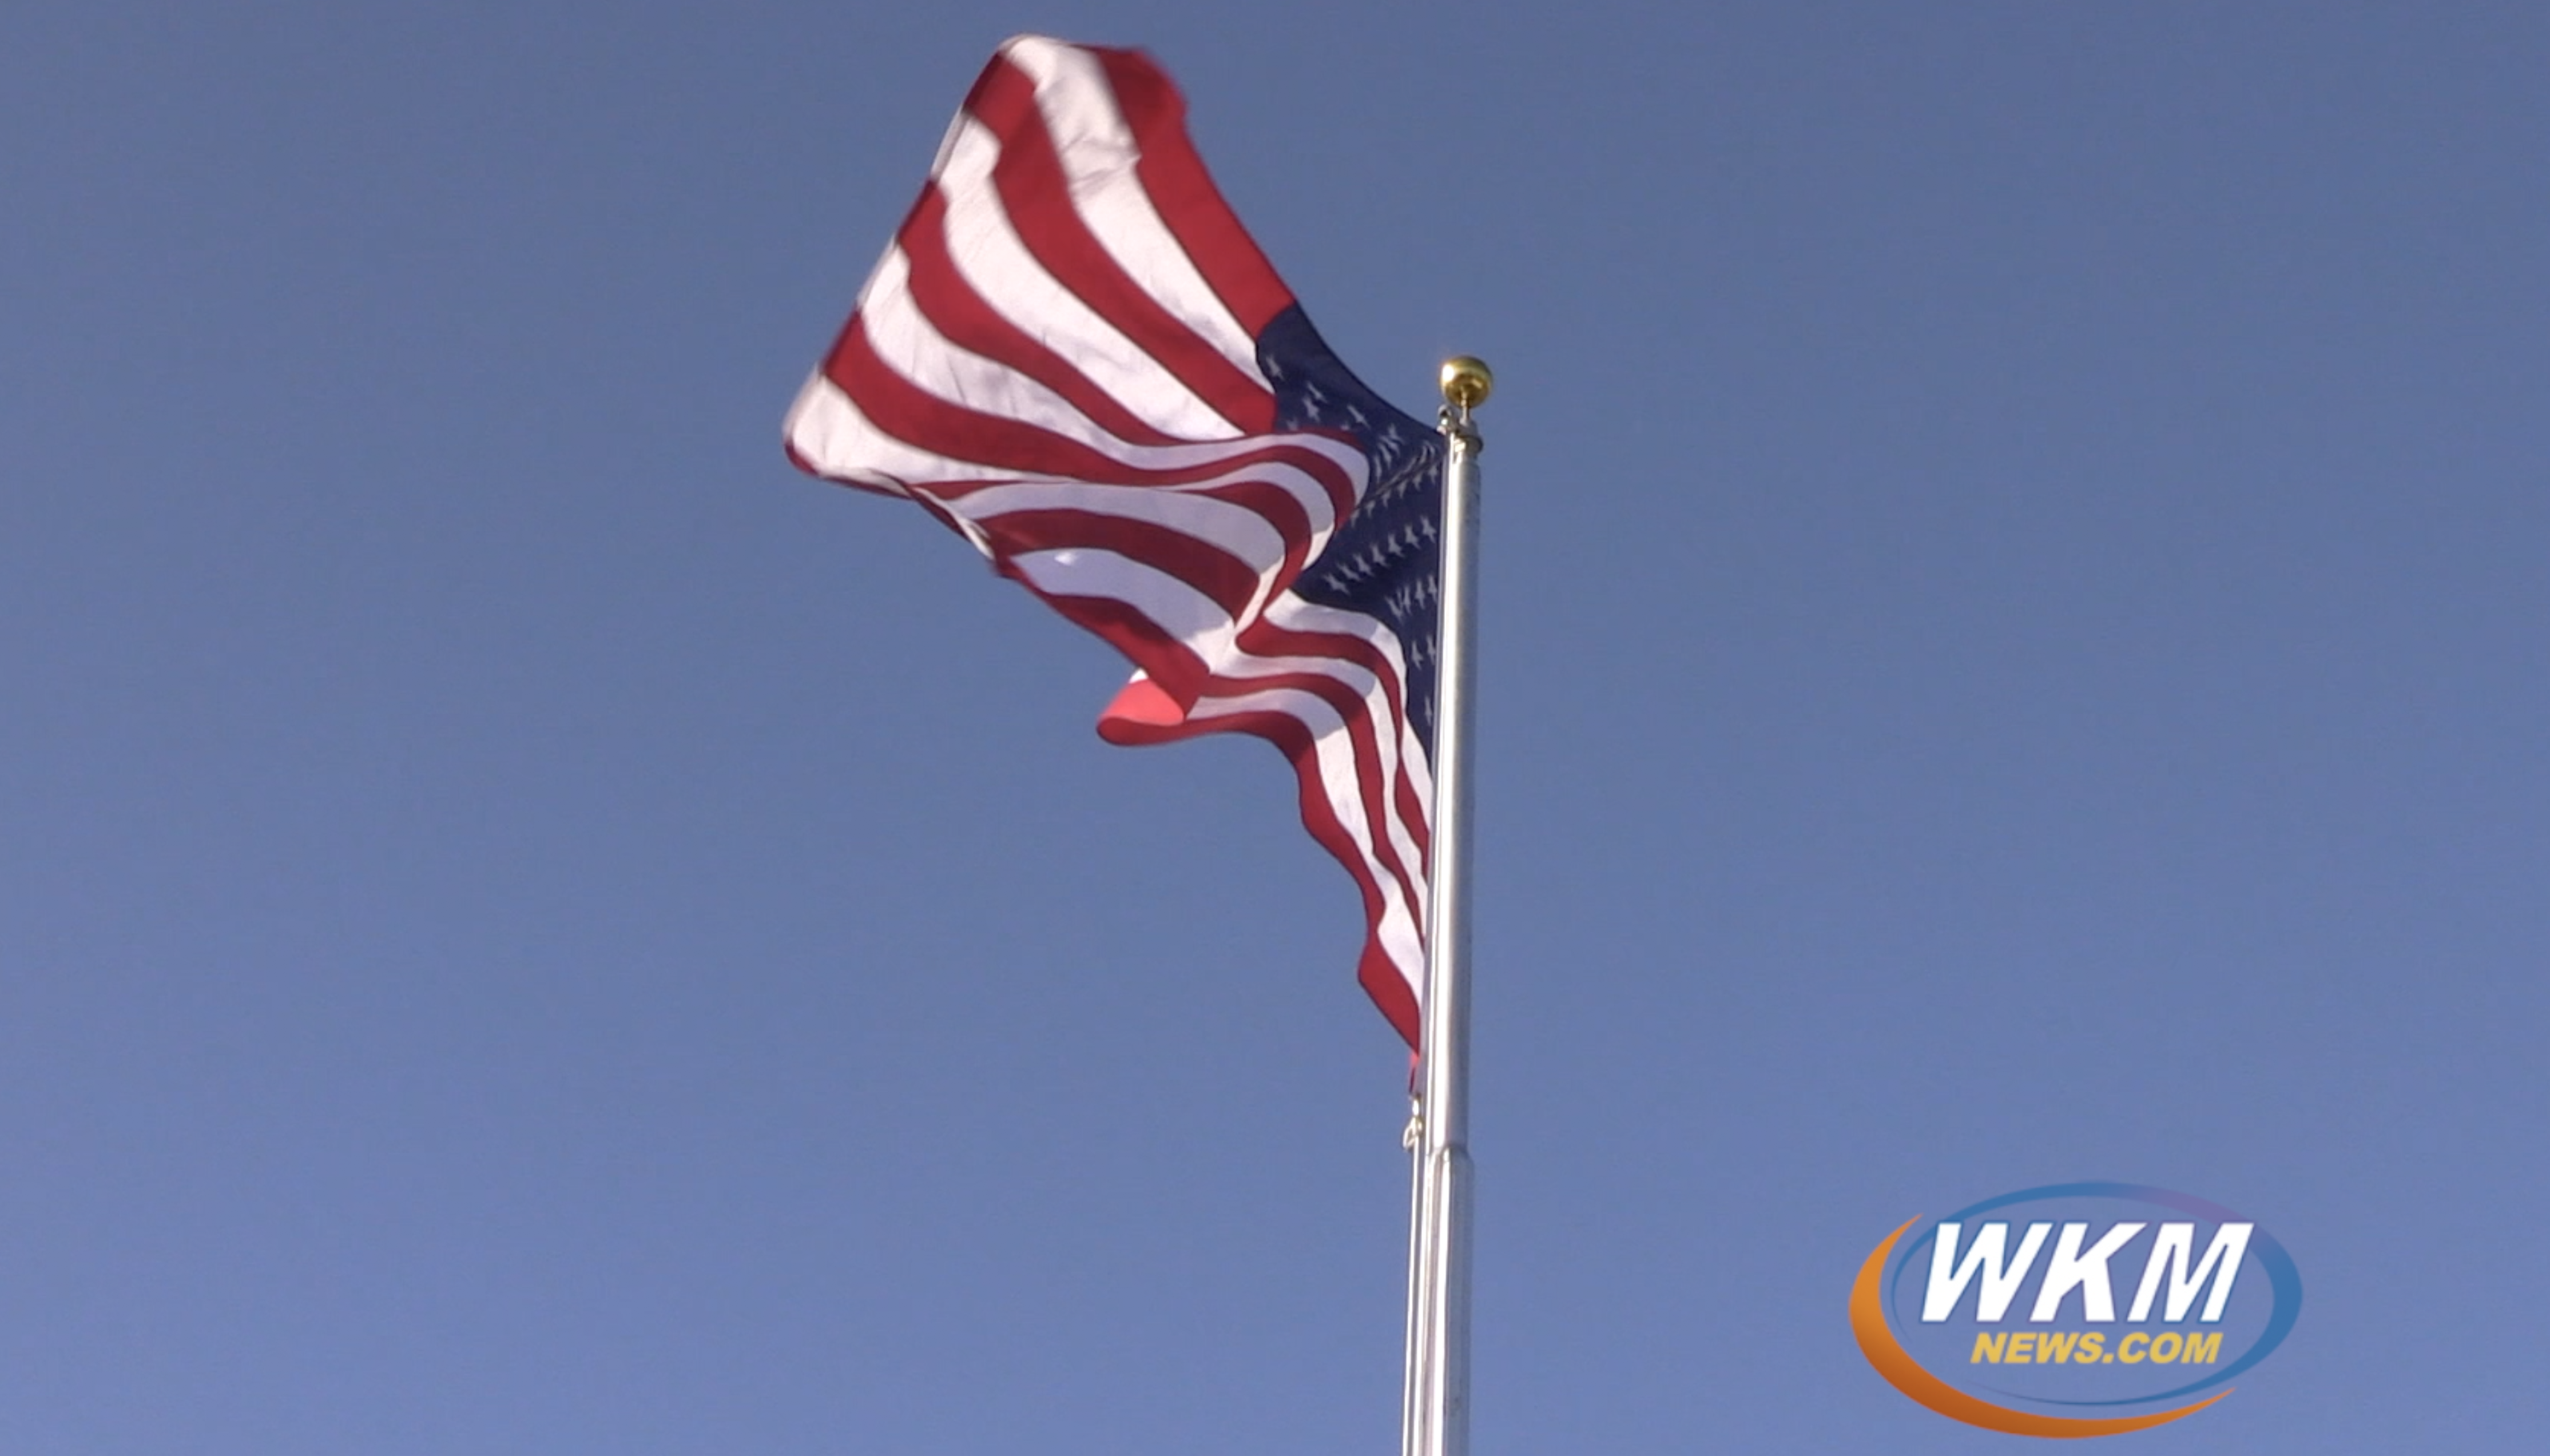 Madison Honors Veterans in a Very Special Way